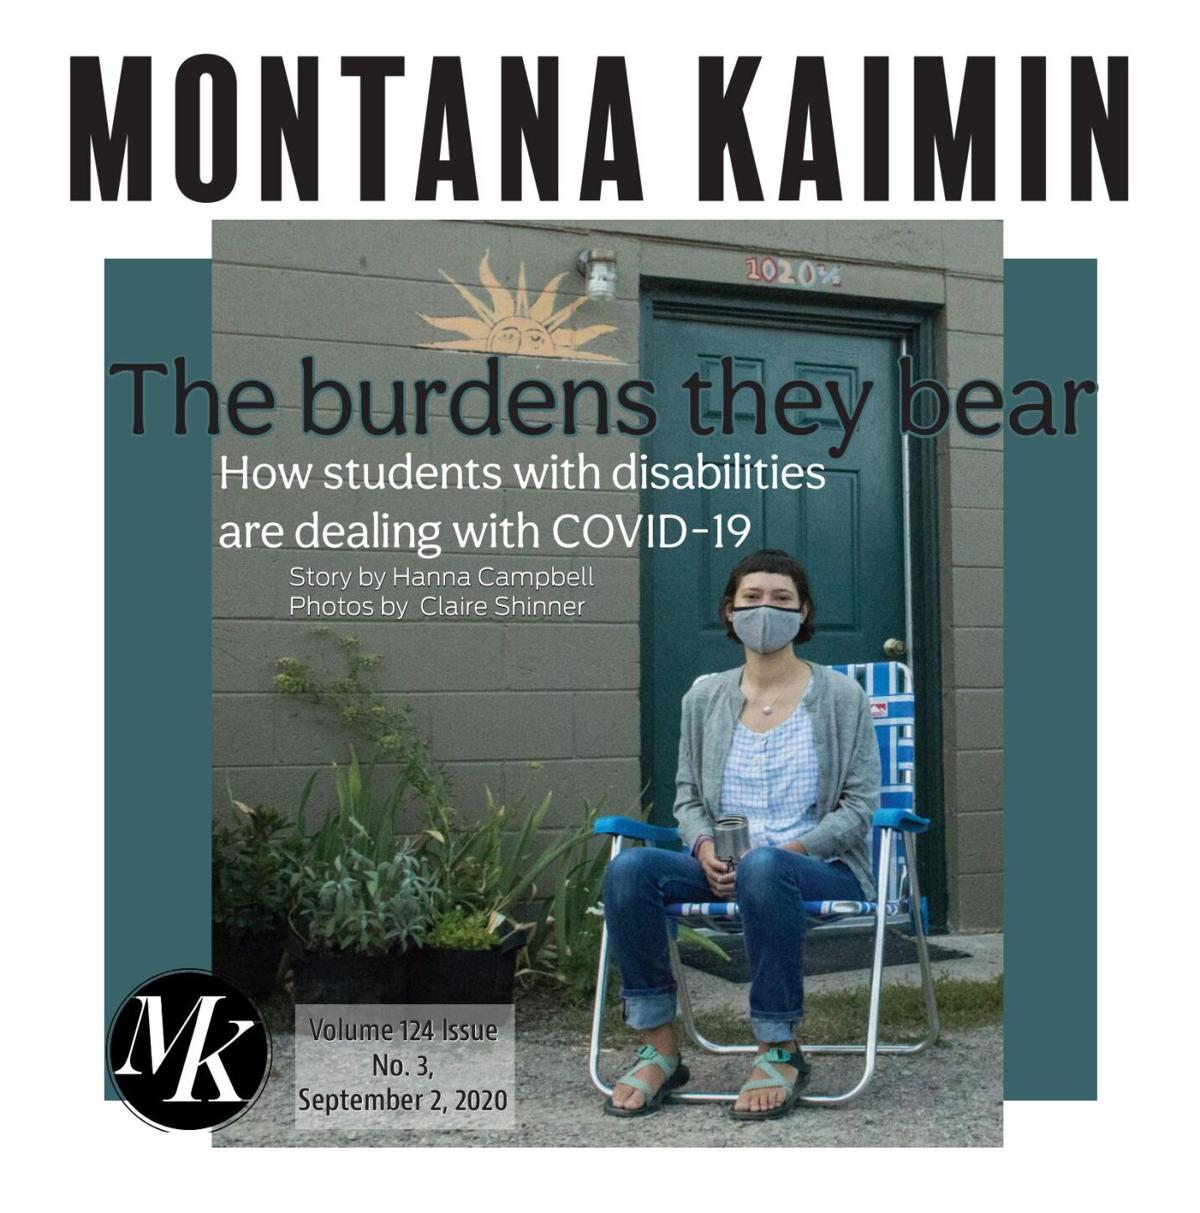 Montana Kaimin | Vol 123 Issue no. 03 09.02.2020